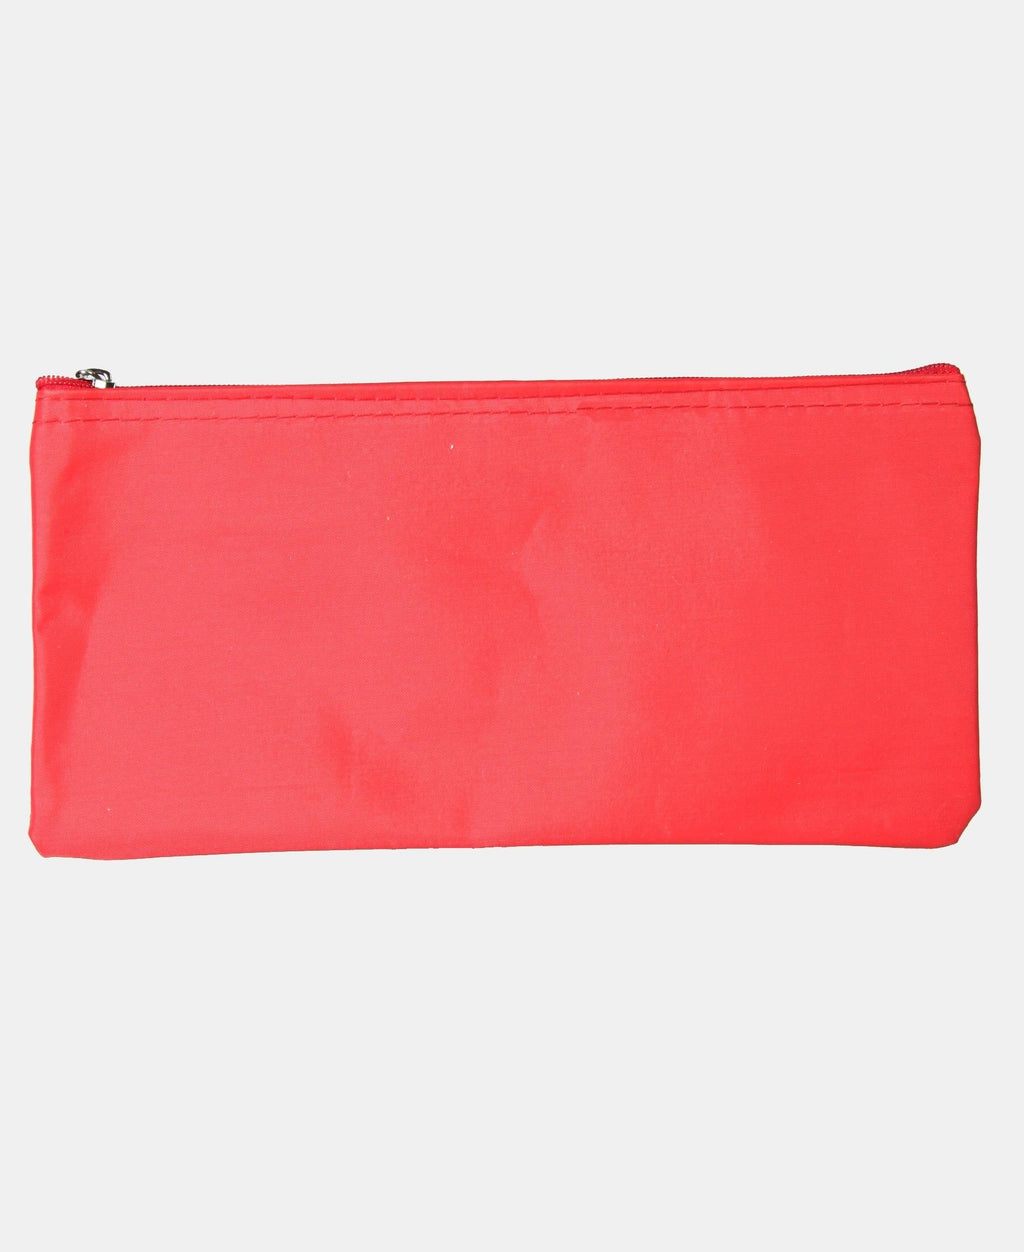 Econo 22Cm Nylon Pencil Case - Red